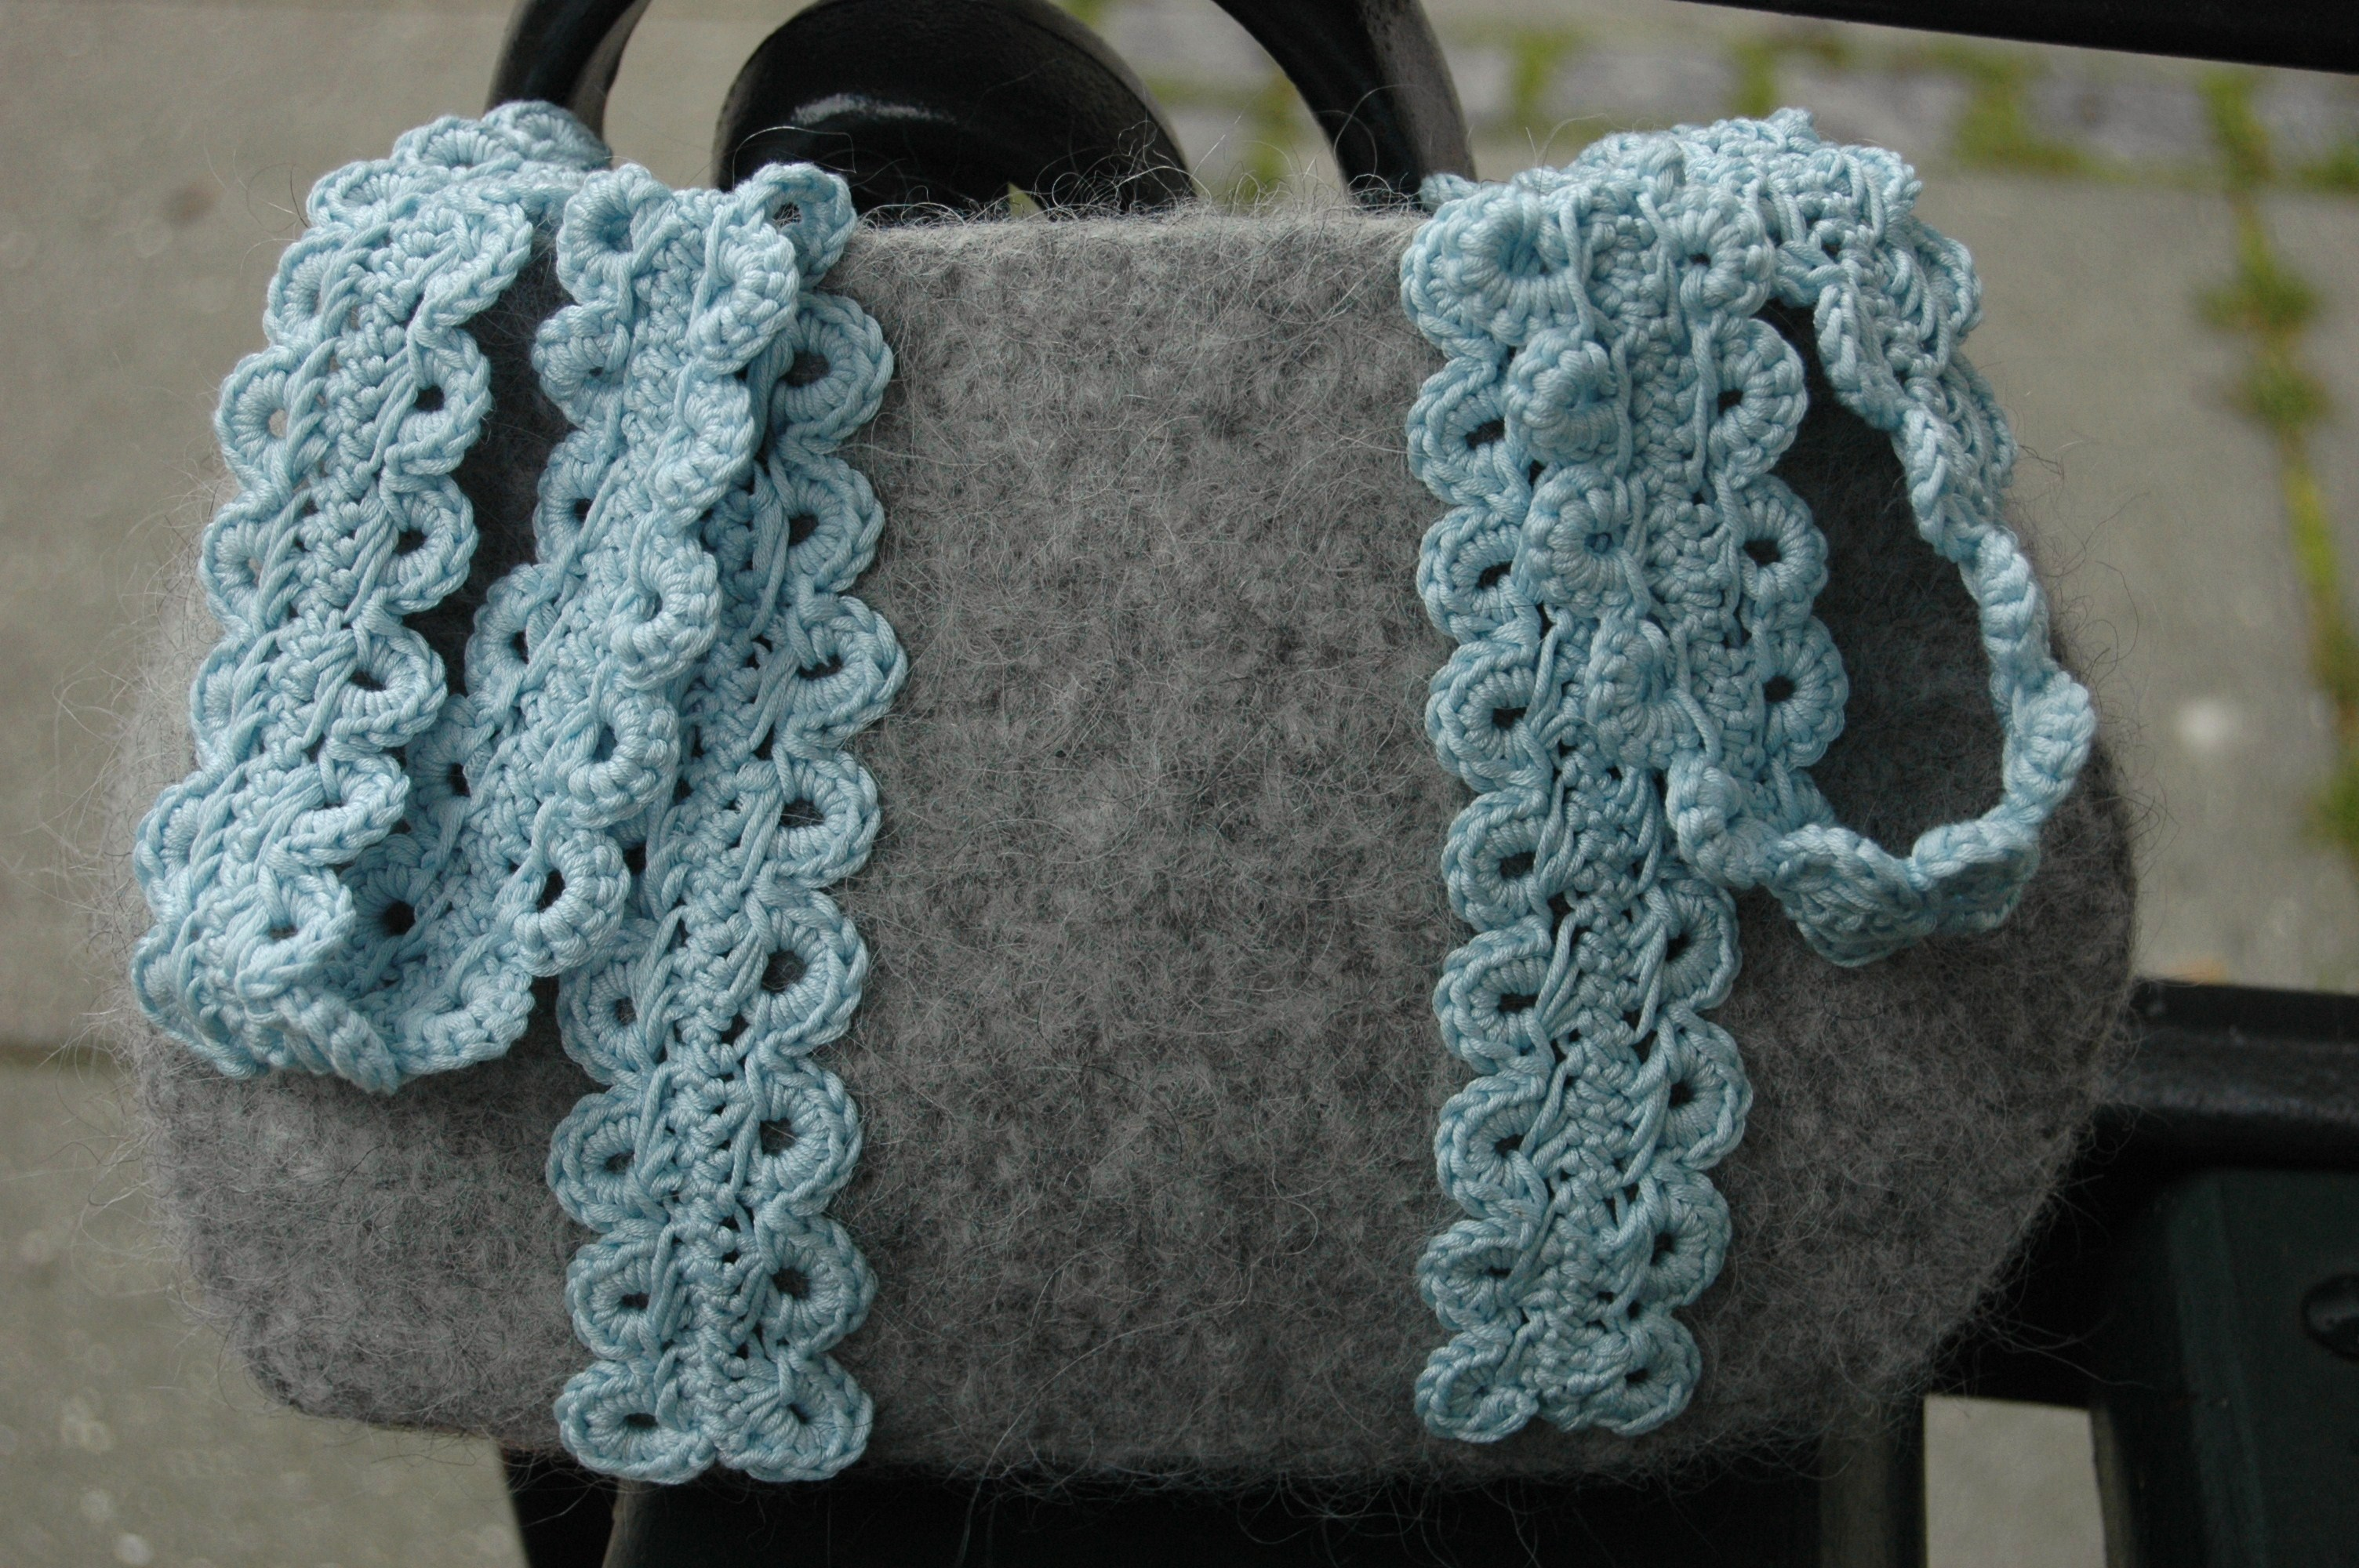 Black Sheep Bags - Knitting Patterns for Felted Handbags